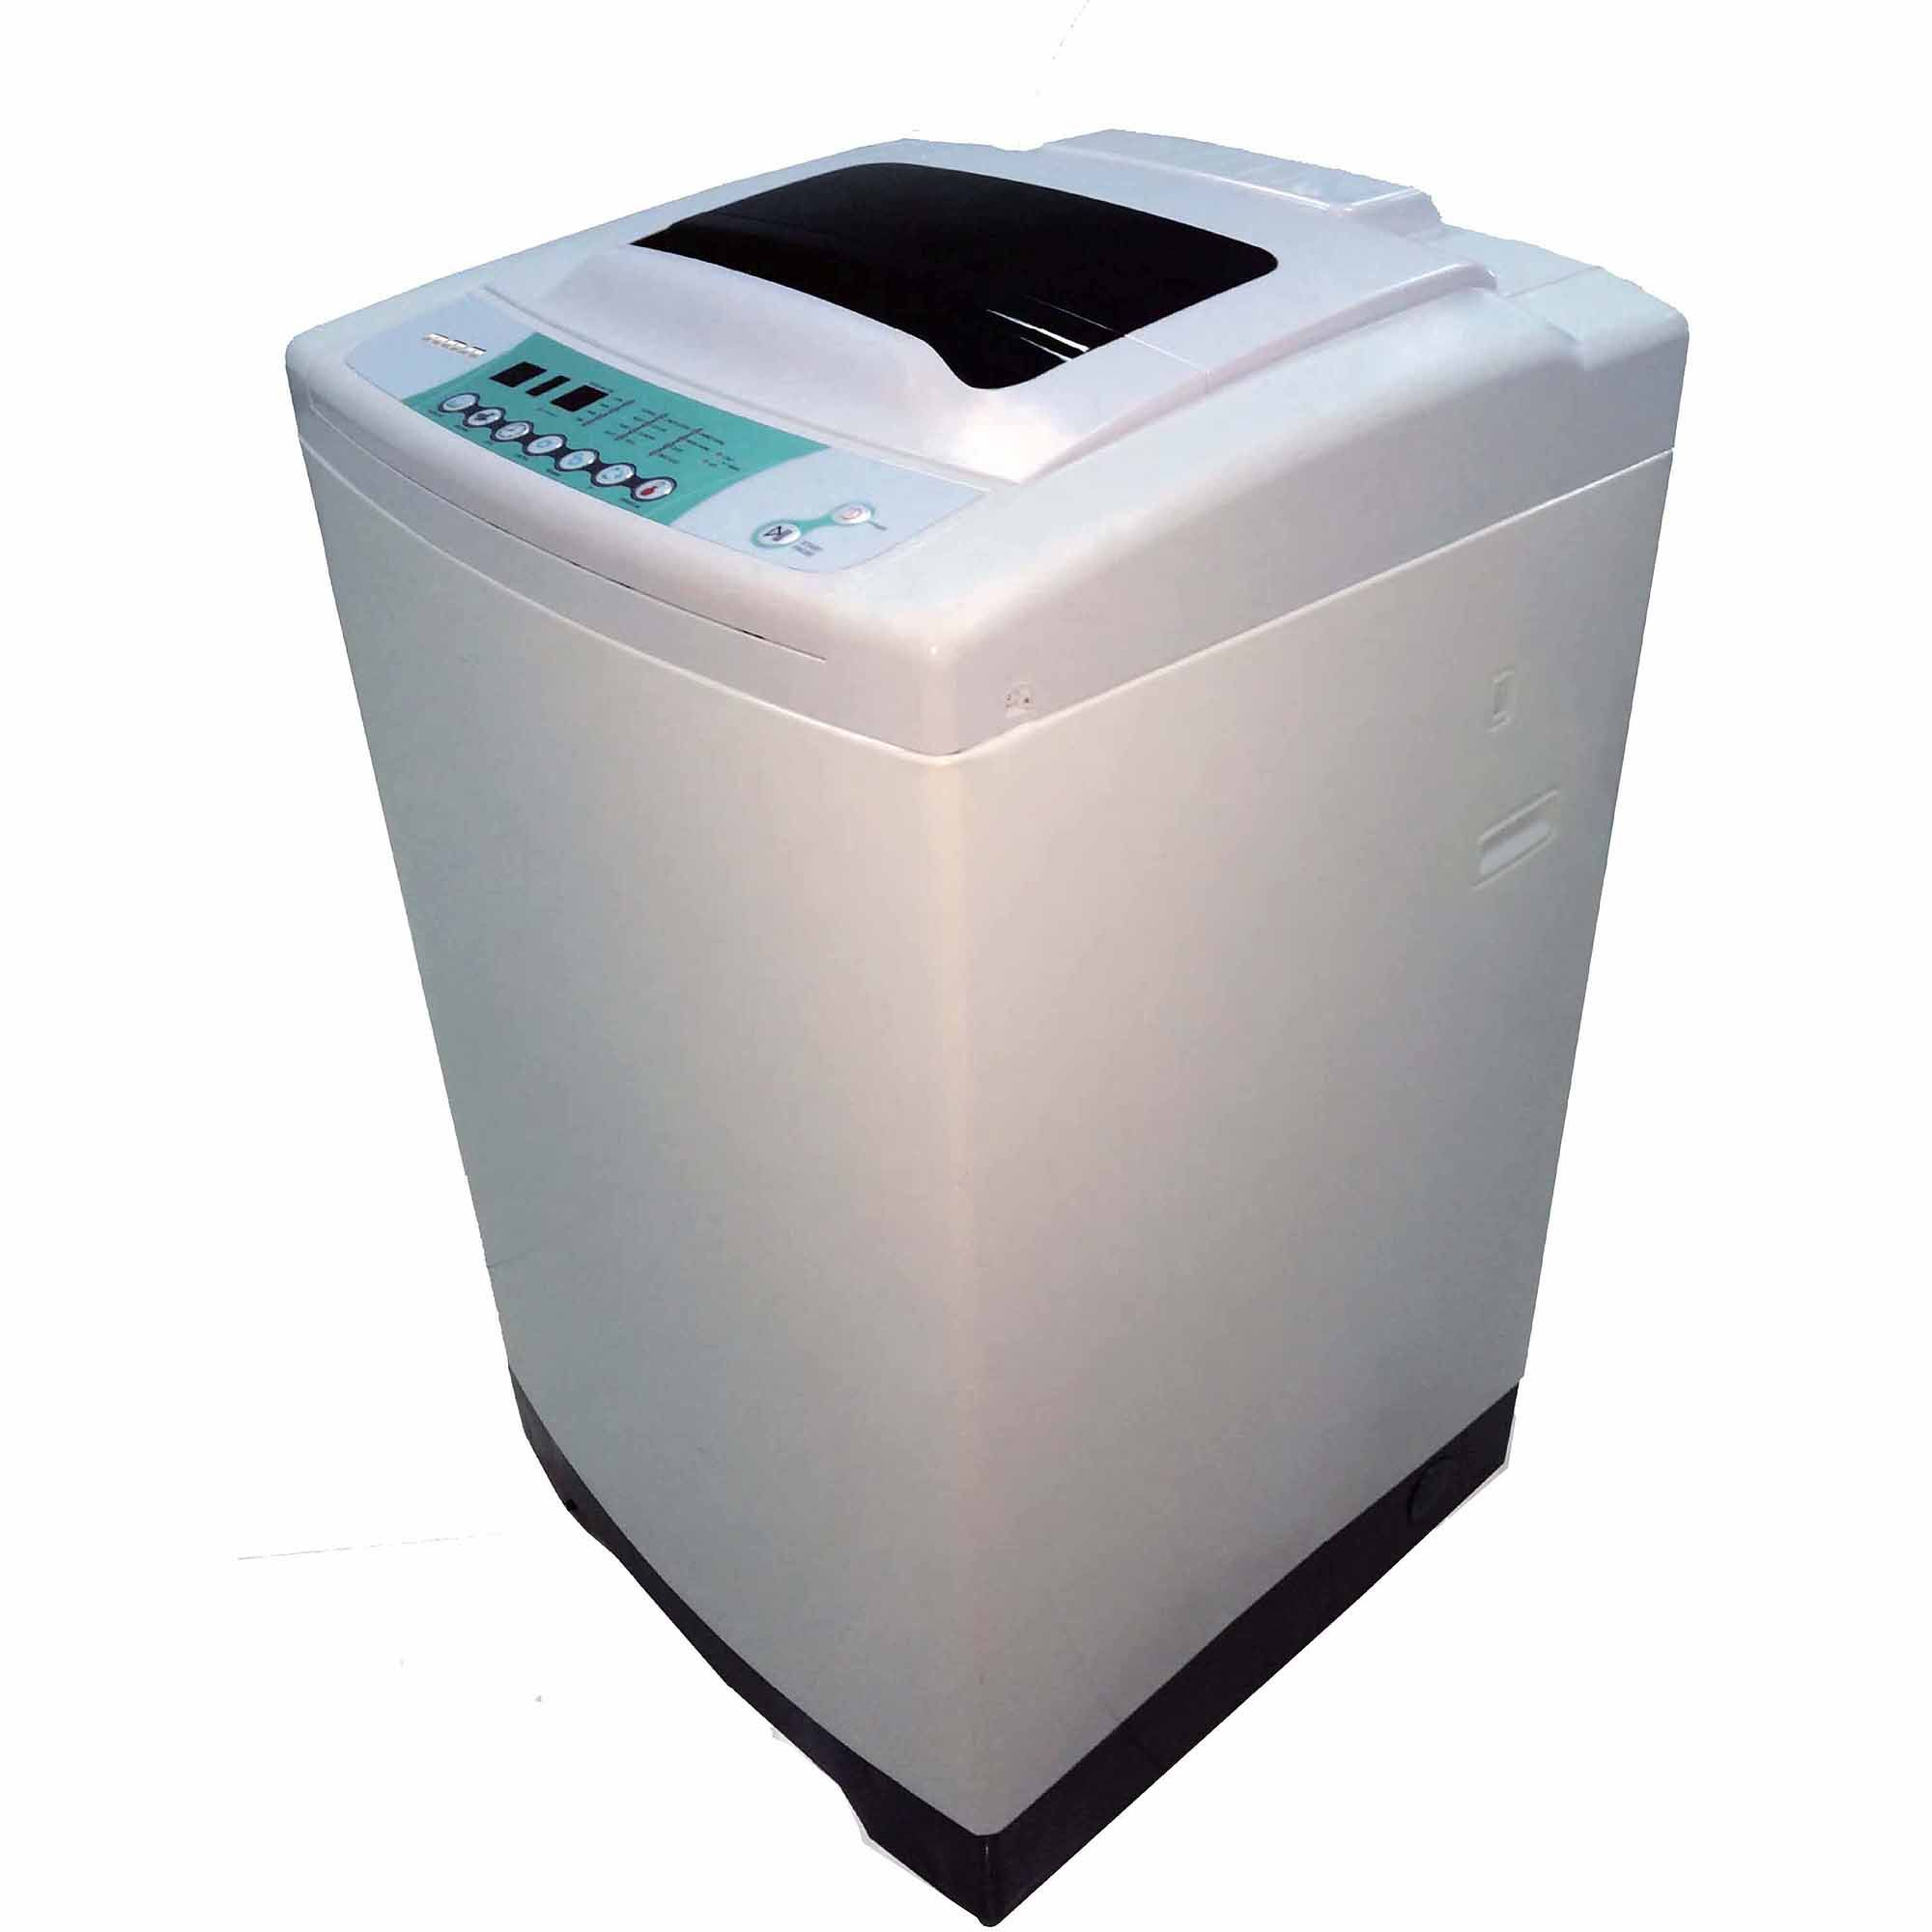 Some Of The Best Portable Washing Machines Online Portable Washer Compact Washer And Dryer Portable Washing Machine